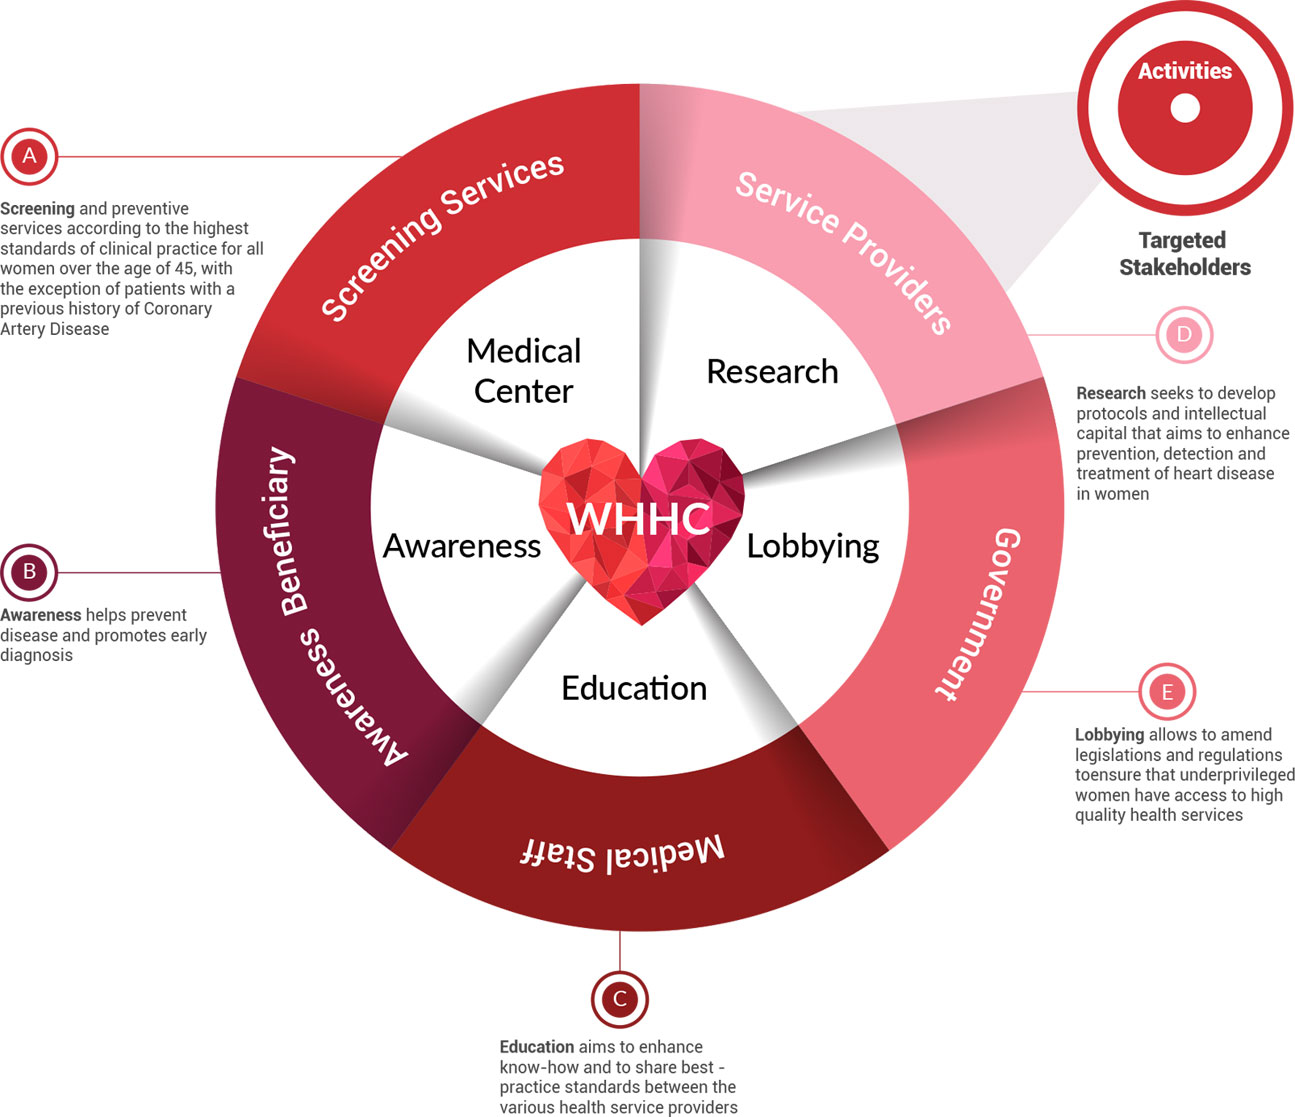 WHHC Activity Categories and Targeted Stakeholders